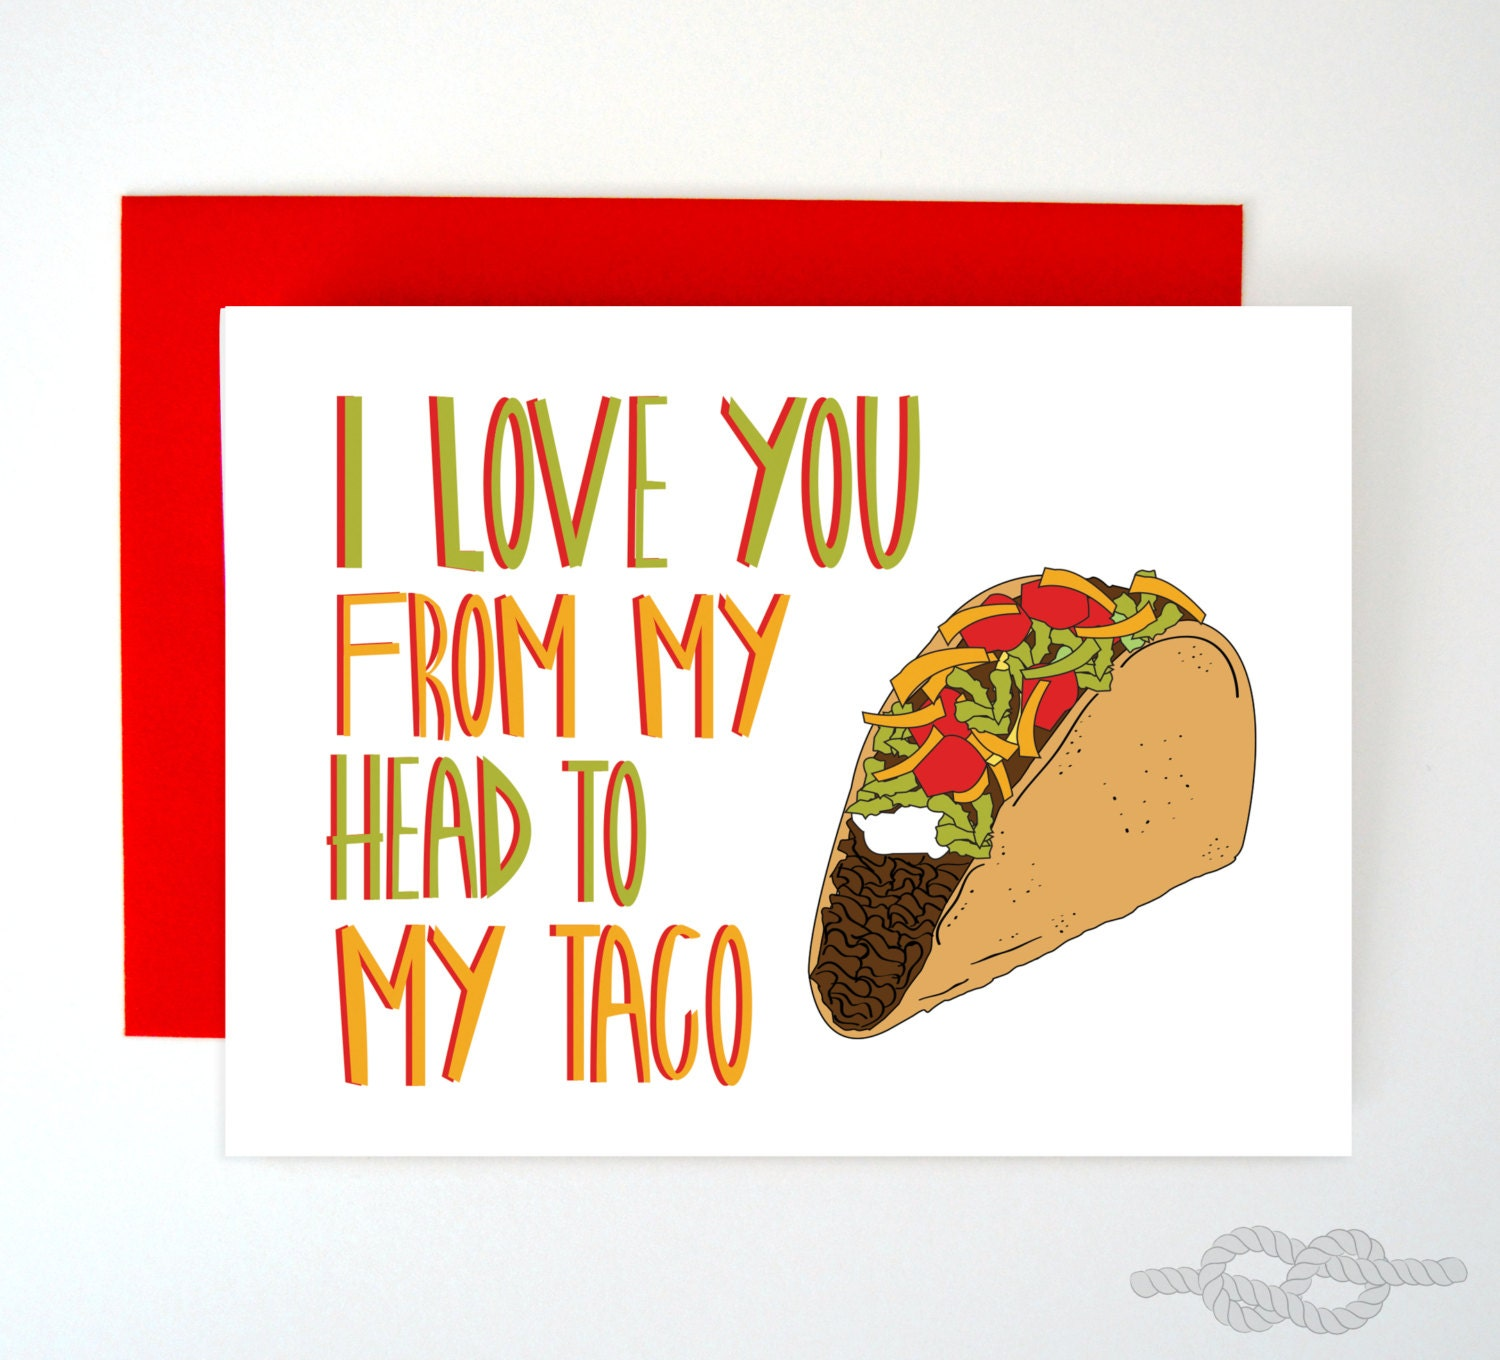 Funny Dirty Birthday Ecards Romantic unusual greeting cards holiday